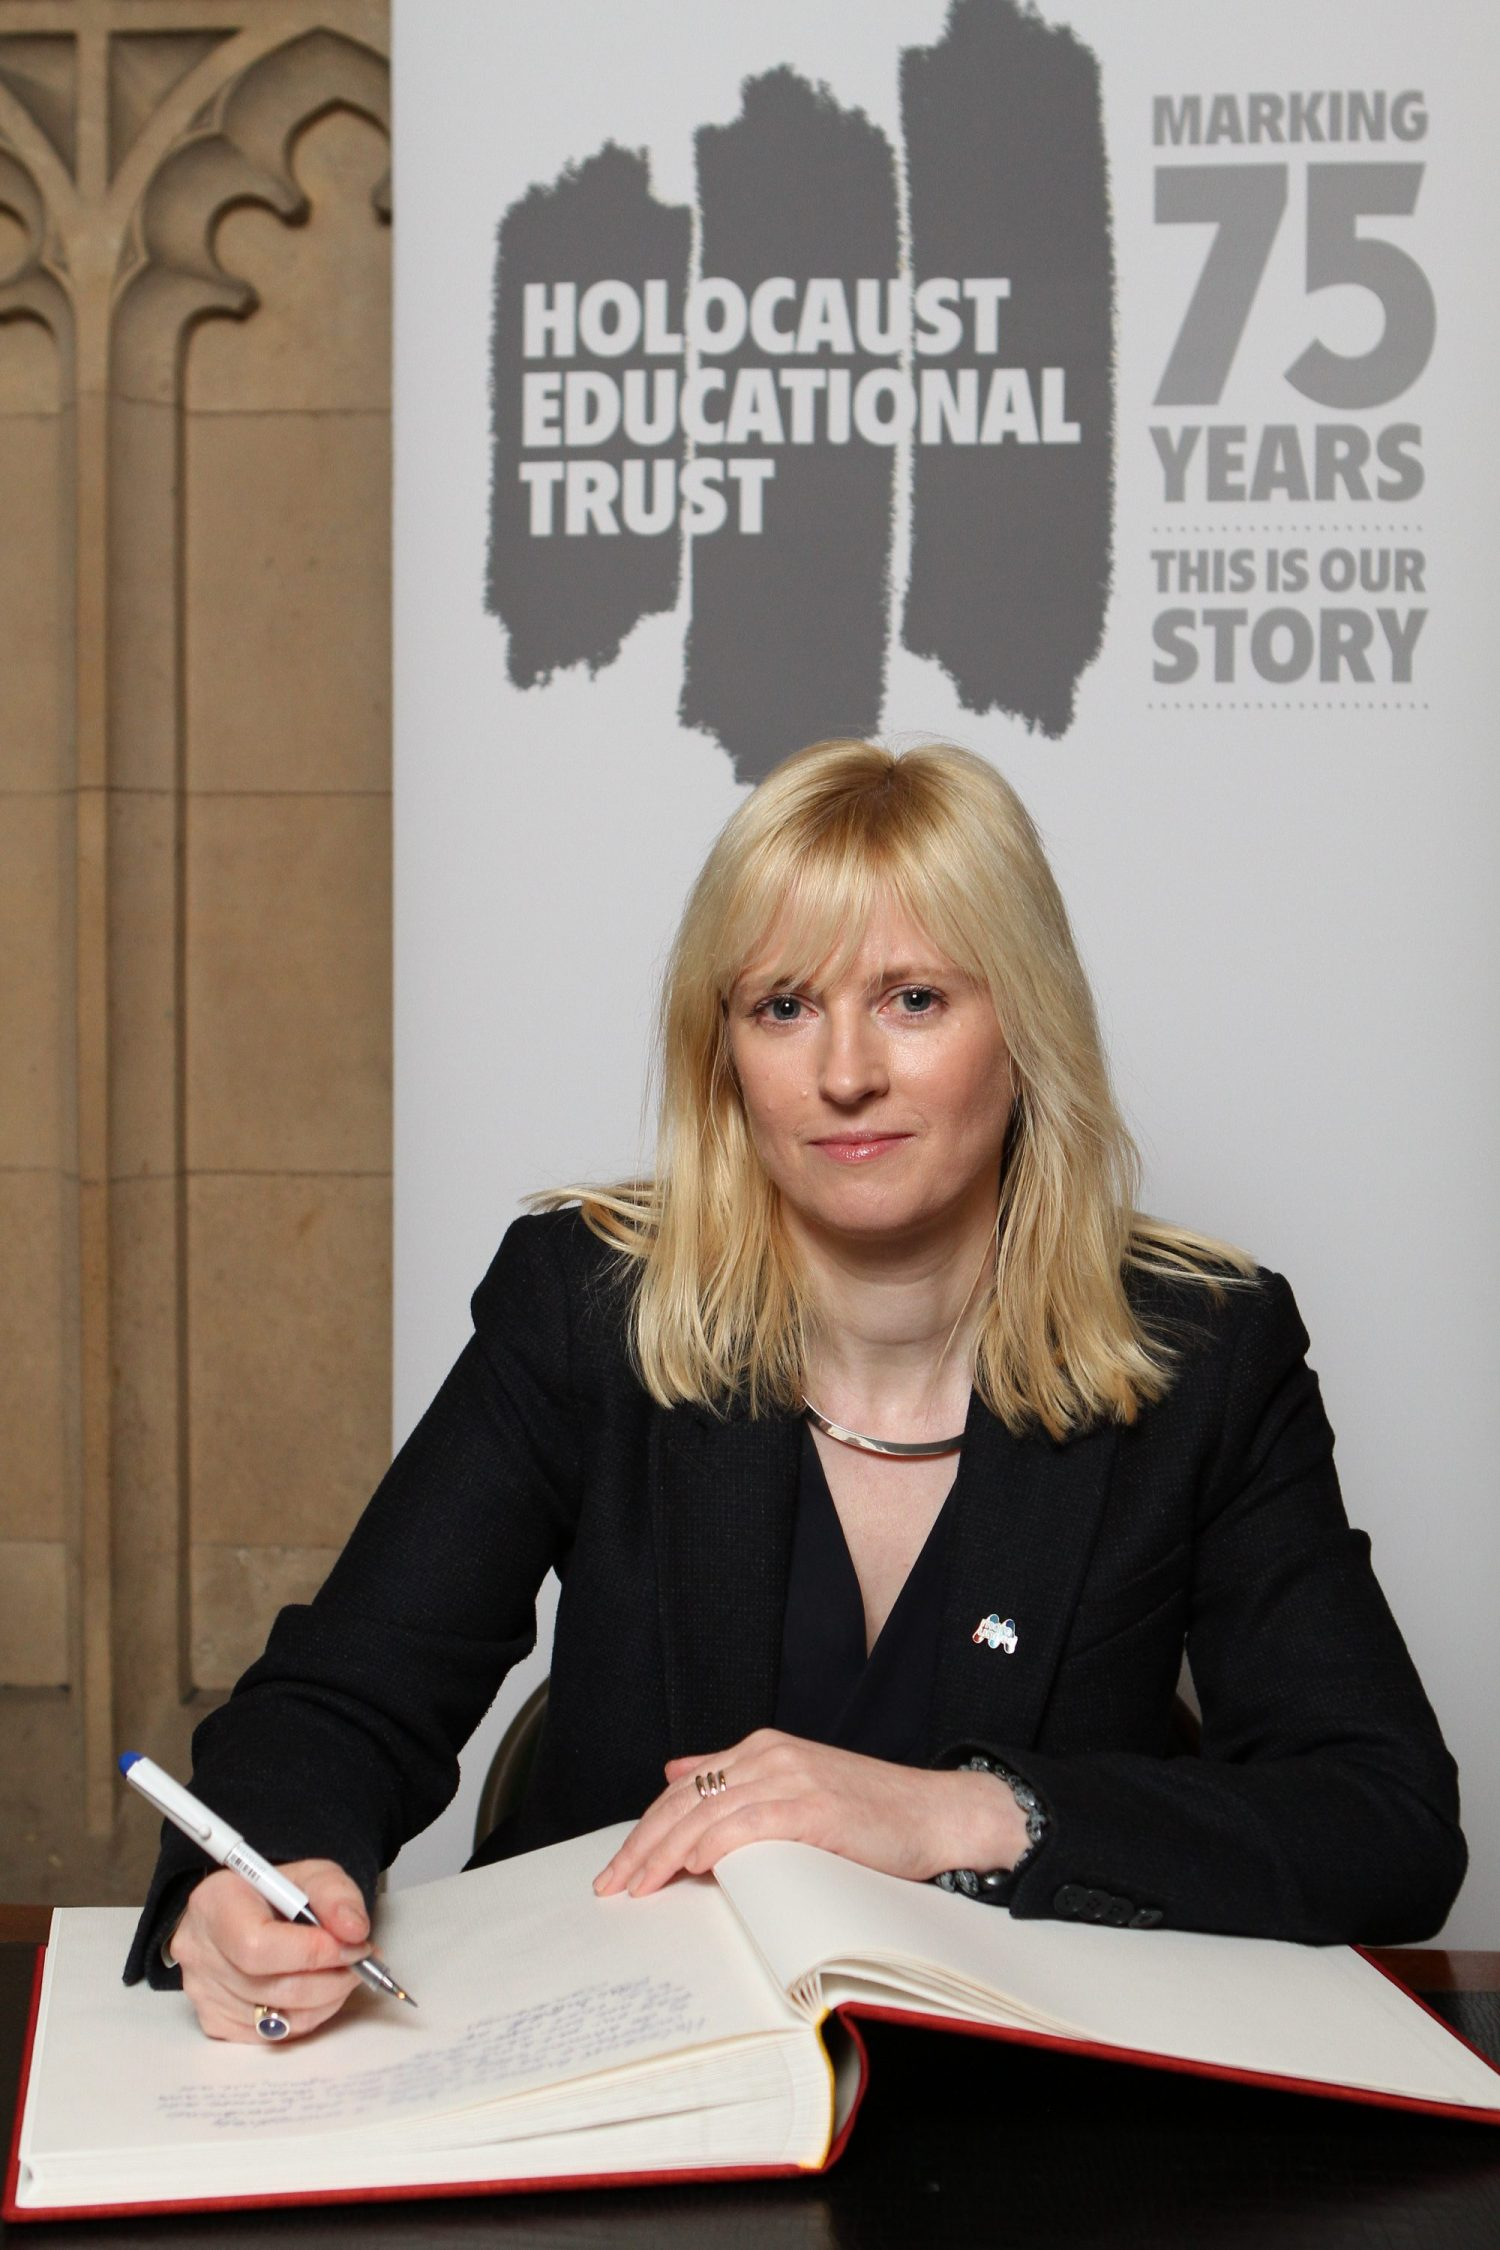 PRESS RELEASE: Rosie signs Holocaust Educational Trust Book of Commitment